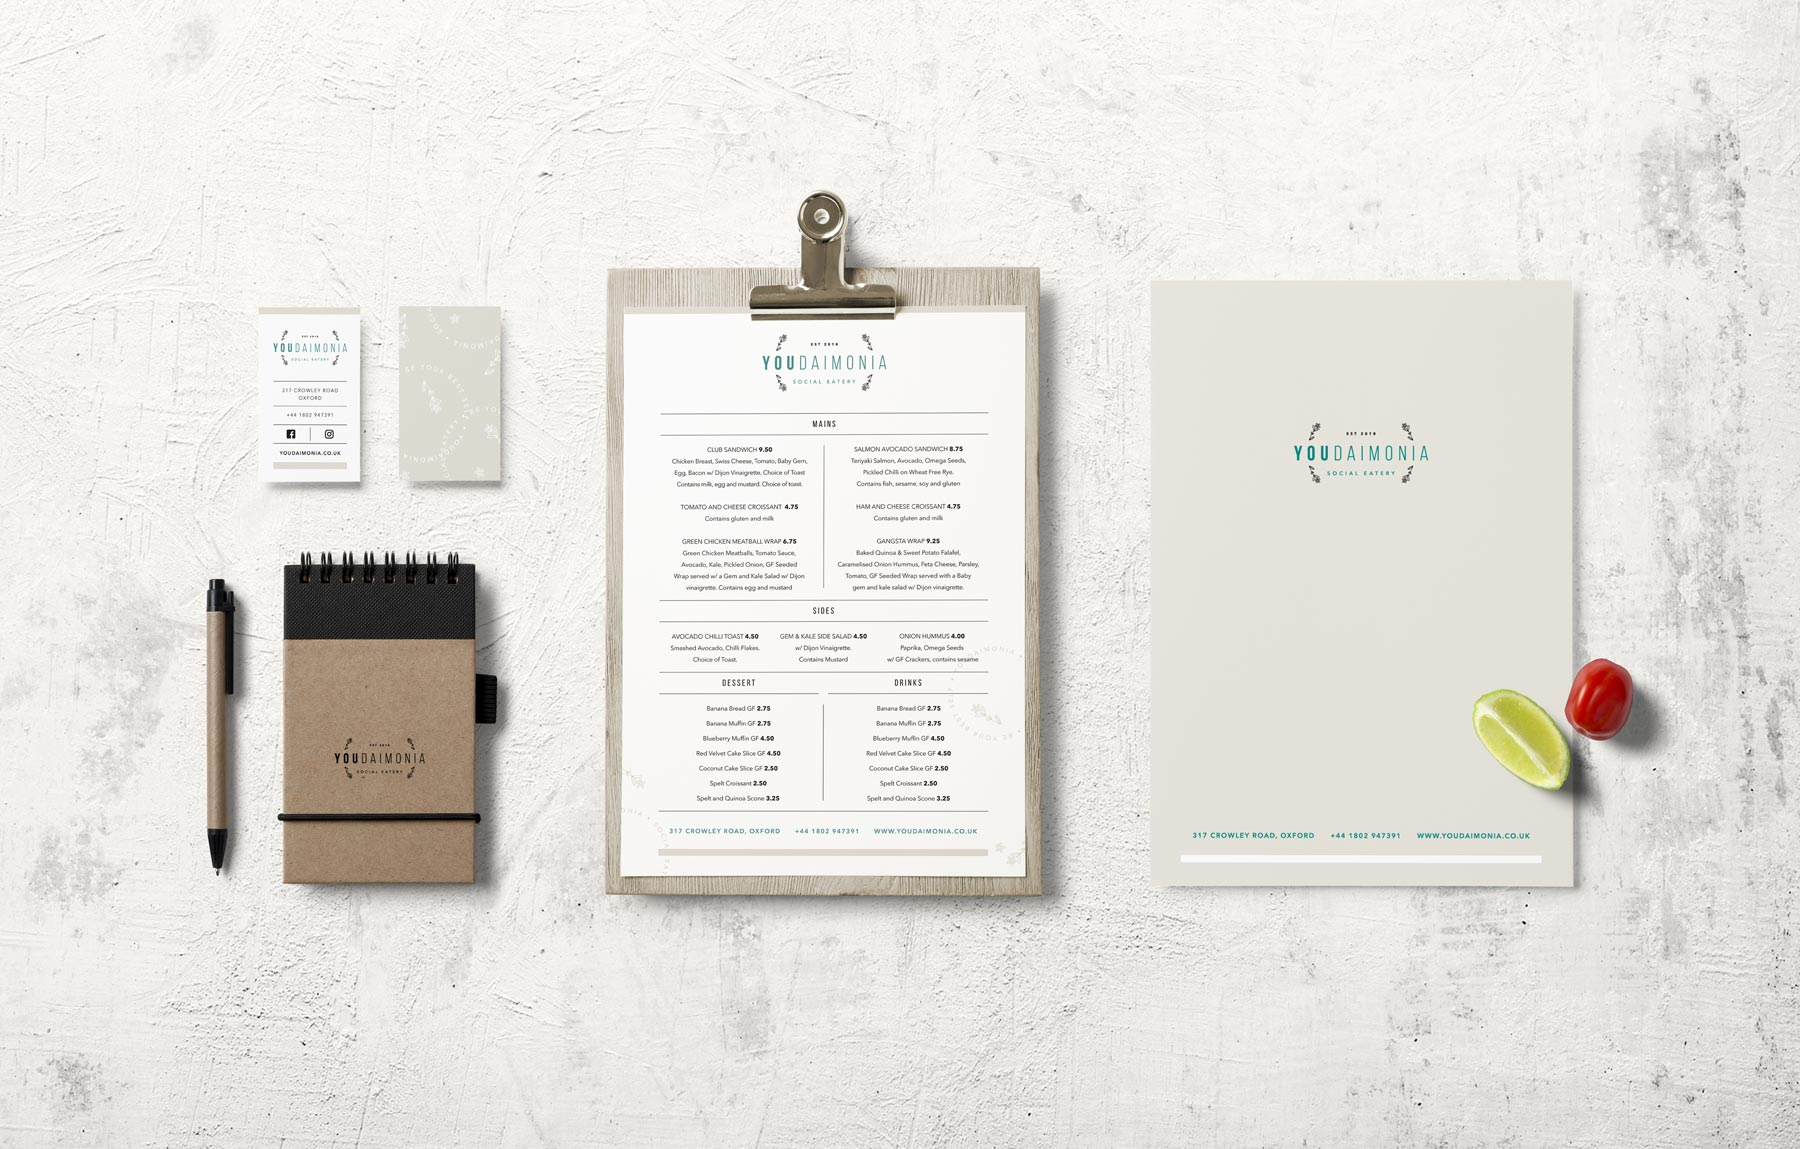 Youdaimonia restaurant stationery design, by Lisa Furze